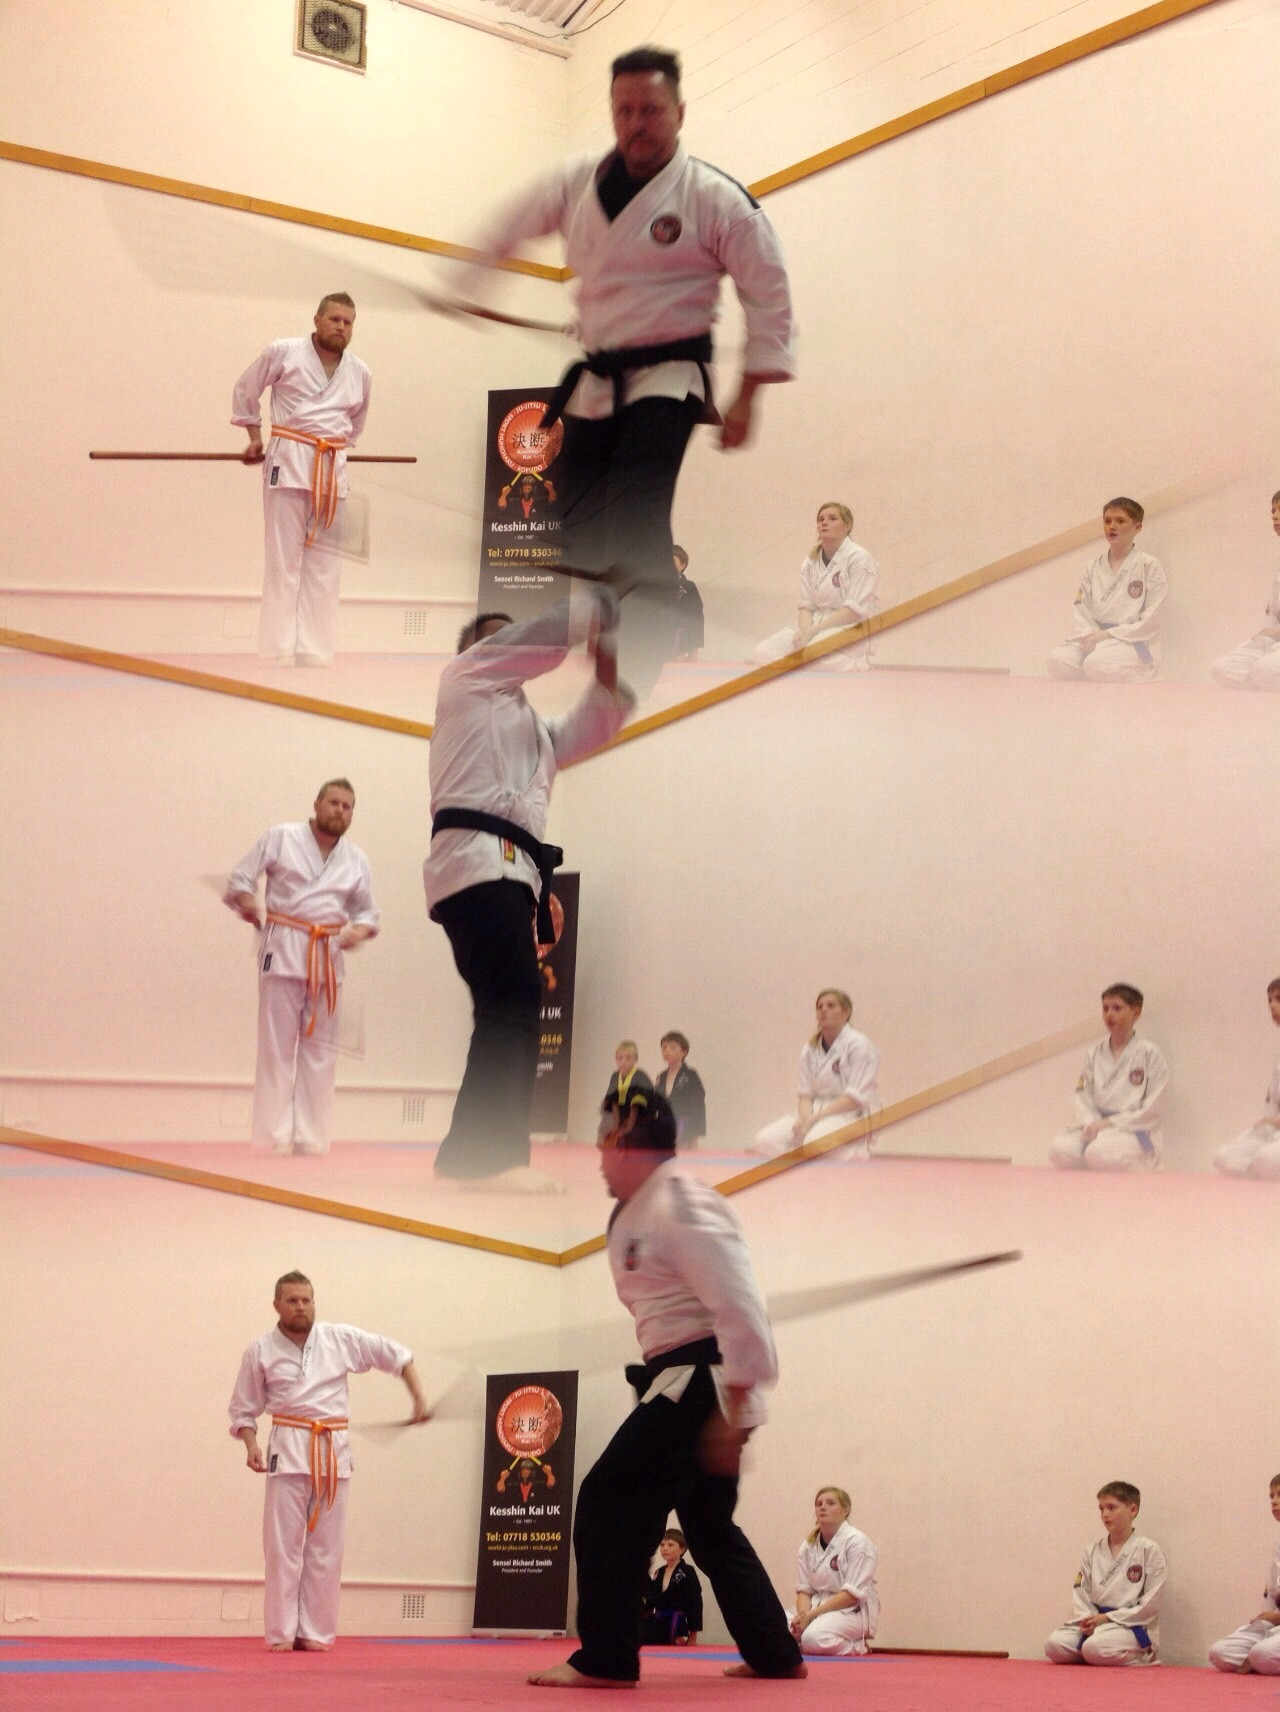 Kesshin Kai-Kobudo 古武道- Good Kobudo training tonight guys, well done!